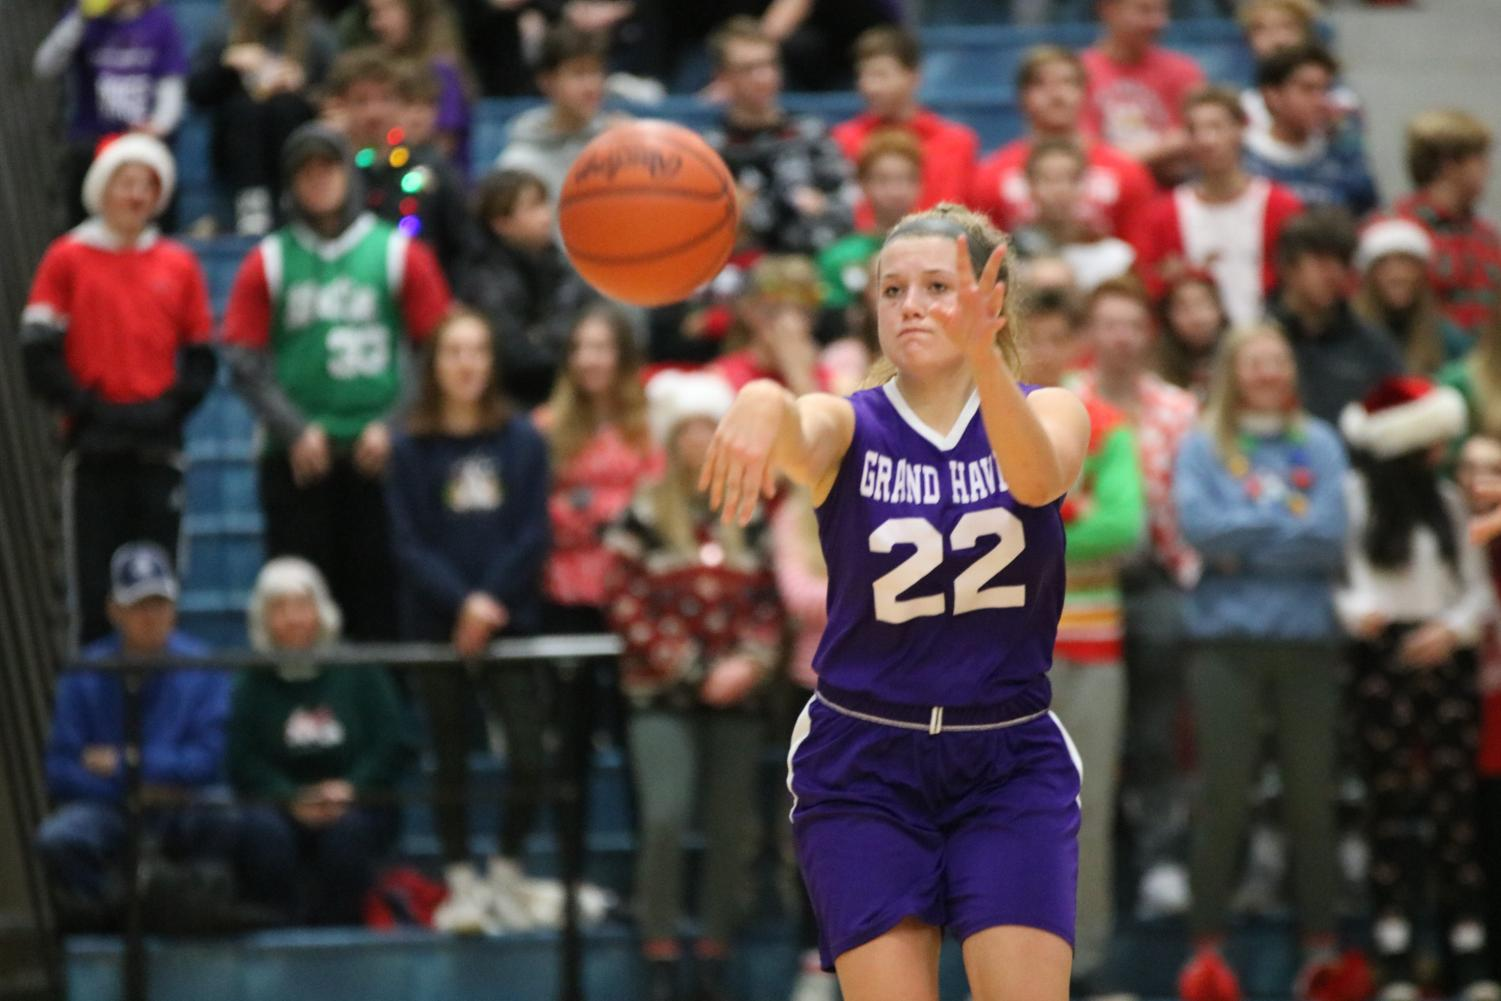 Houle passes the ball in the Bucs Pride game against Spring Lake on Friday Dec. 20.